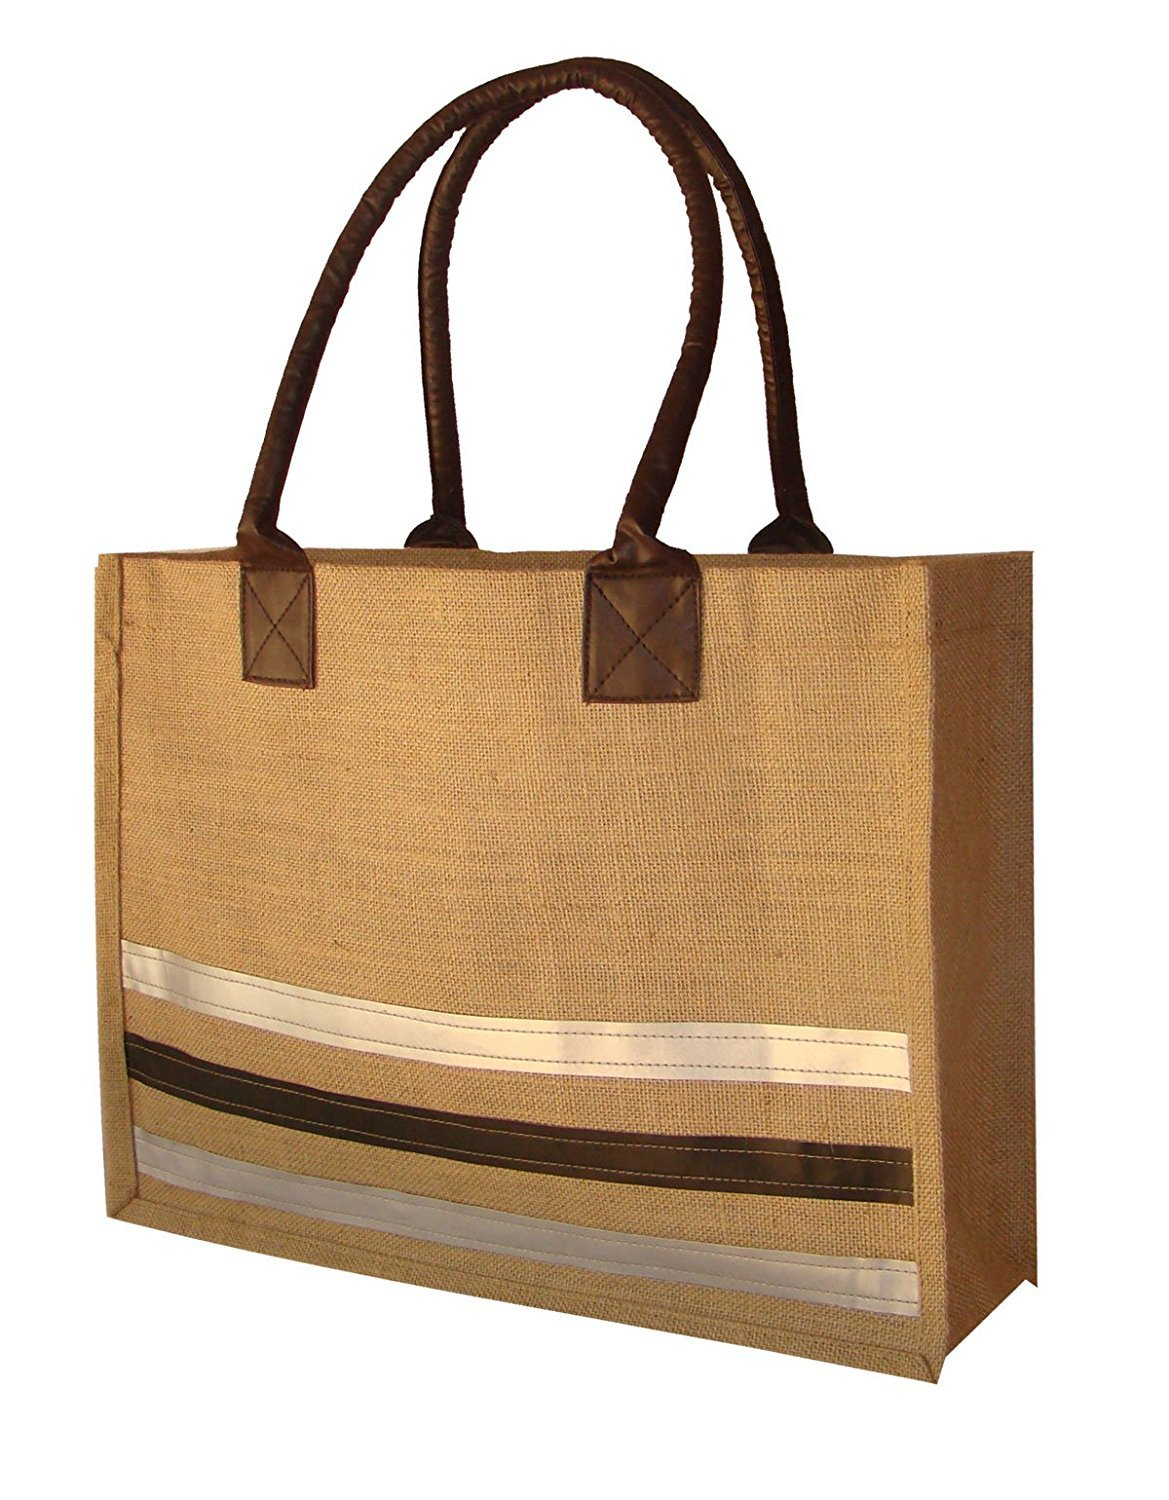 foonty ShopperラミネートNatural Jute Tote Bag with Faux Leather Handlesと内側ポケット18